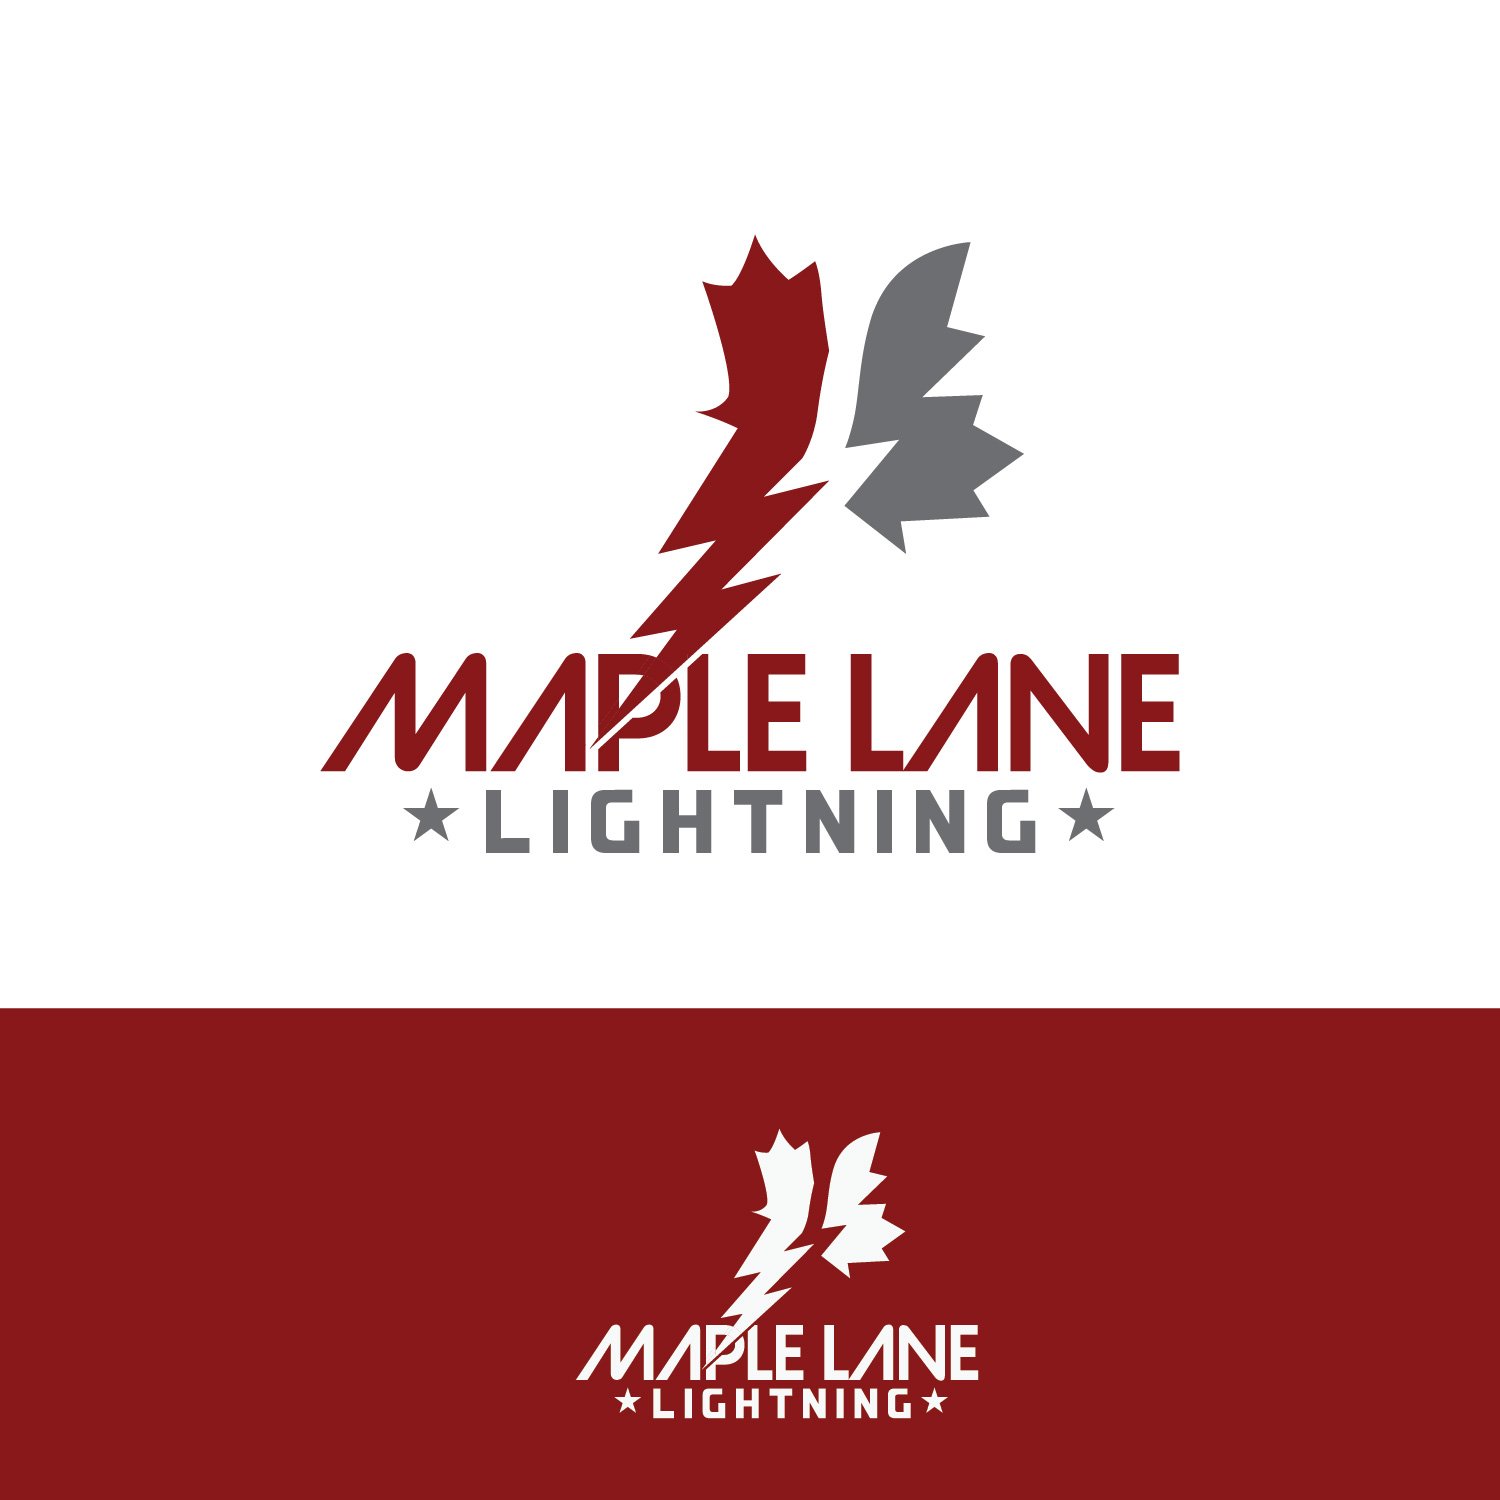 Logo Design by lagalag - Entry No. 38 in the Logo Design Contest Maple Lane Logo Design.